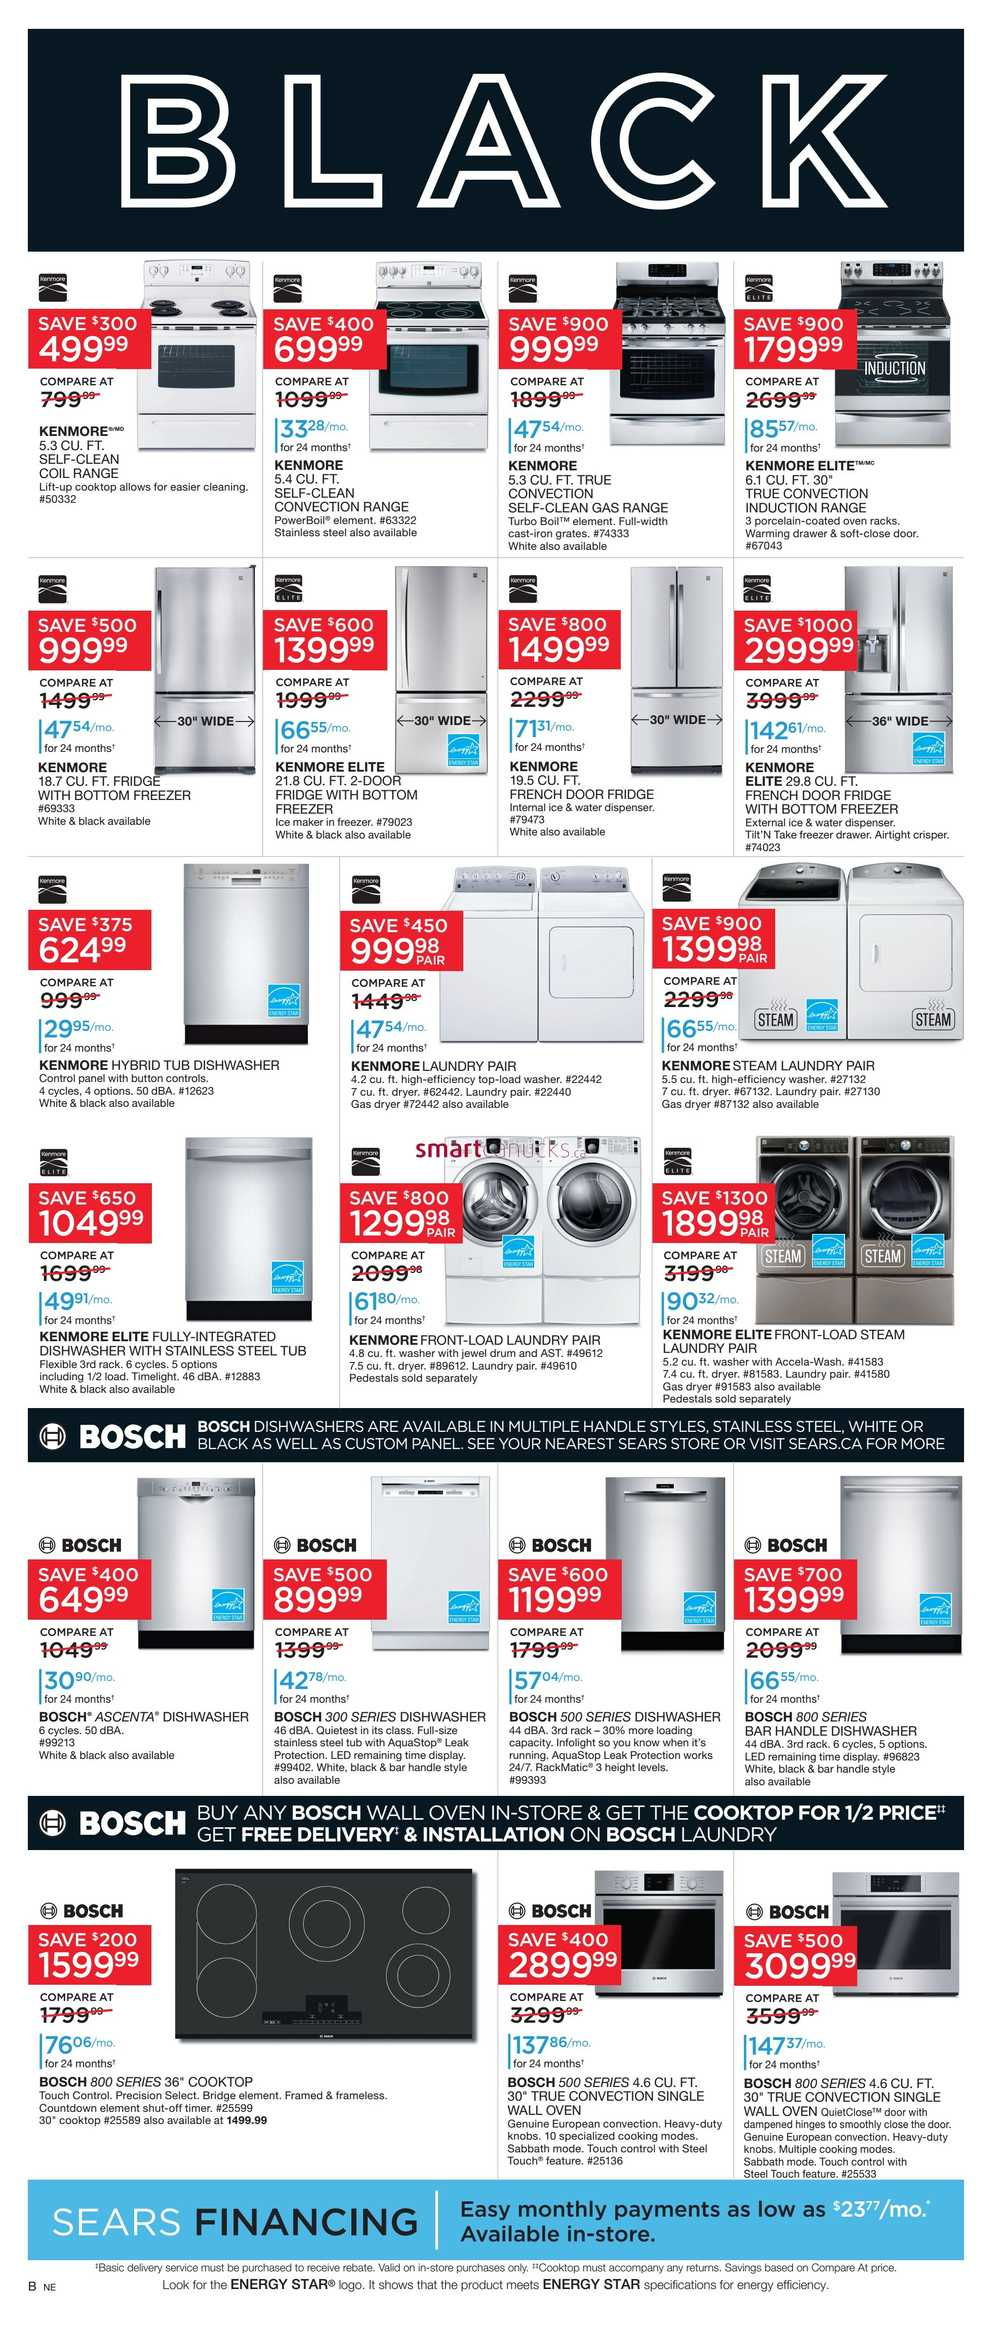 sears black friday flyer november 24 to 28. Black Bedroom Furniture Sets. Home Design Ideas